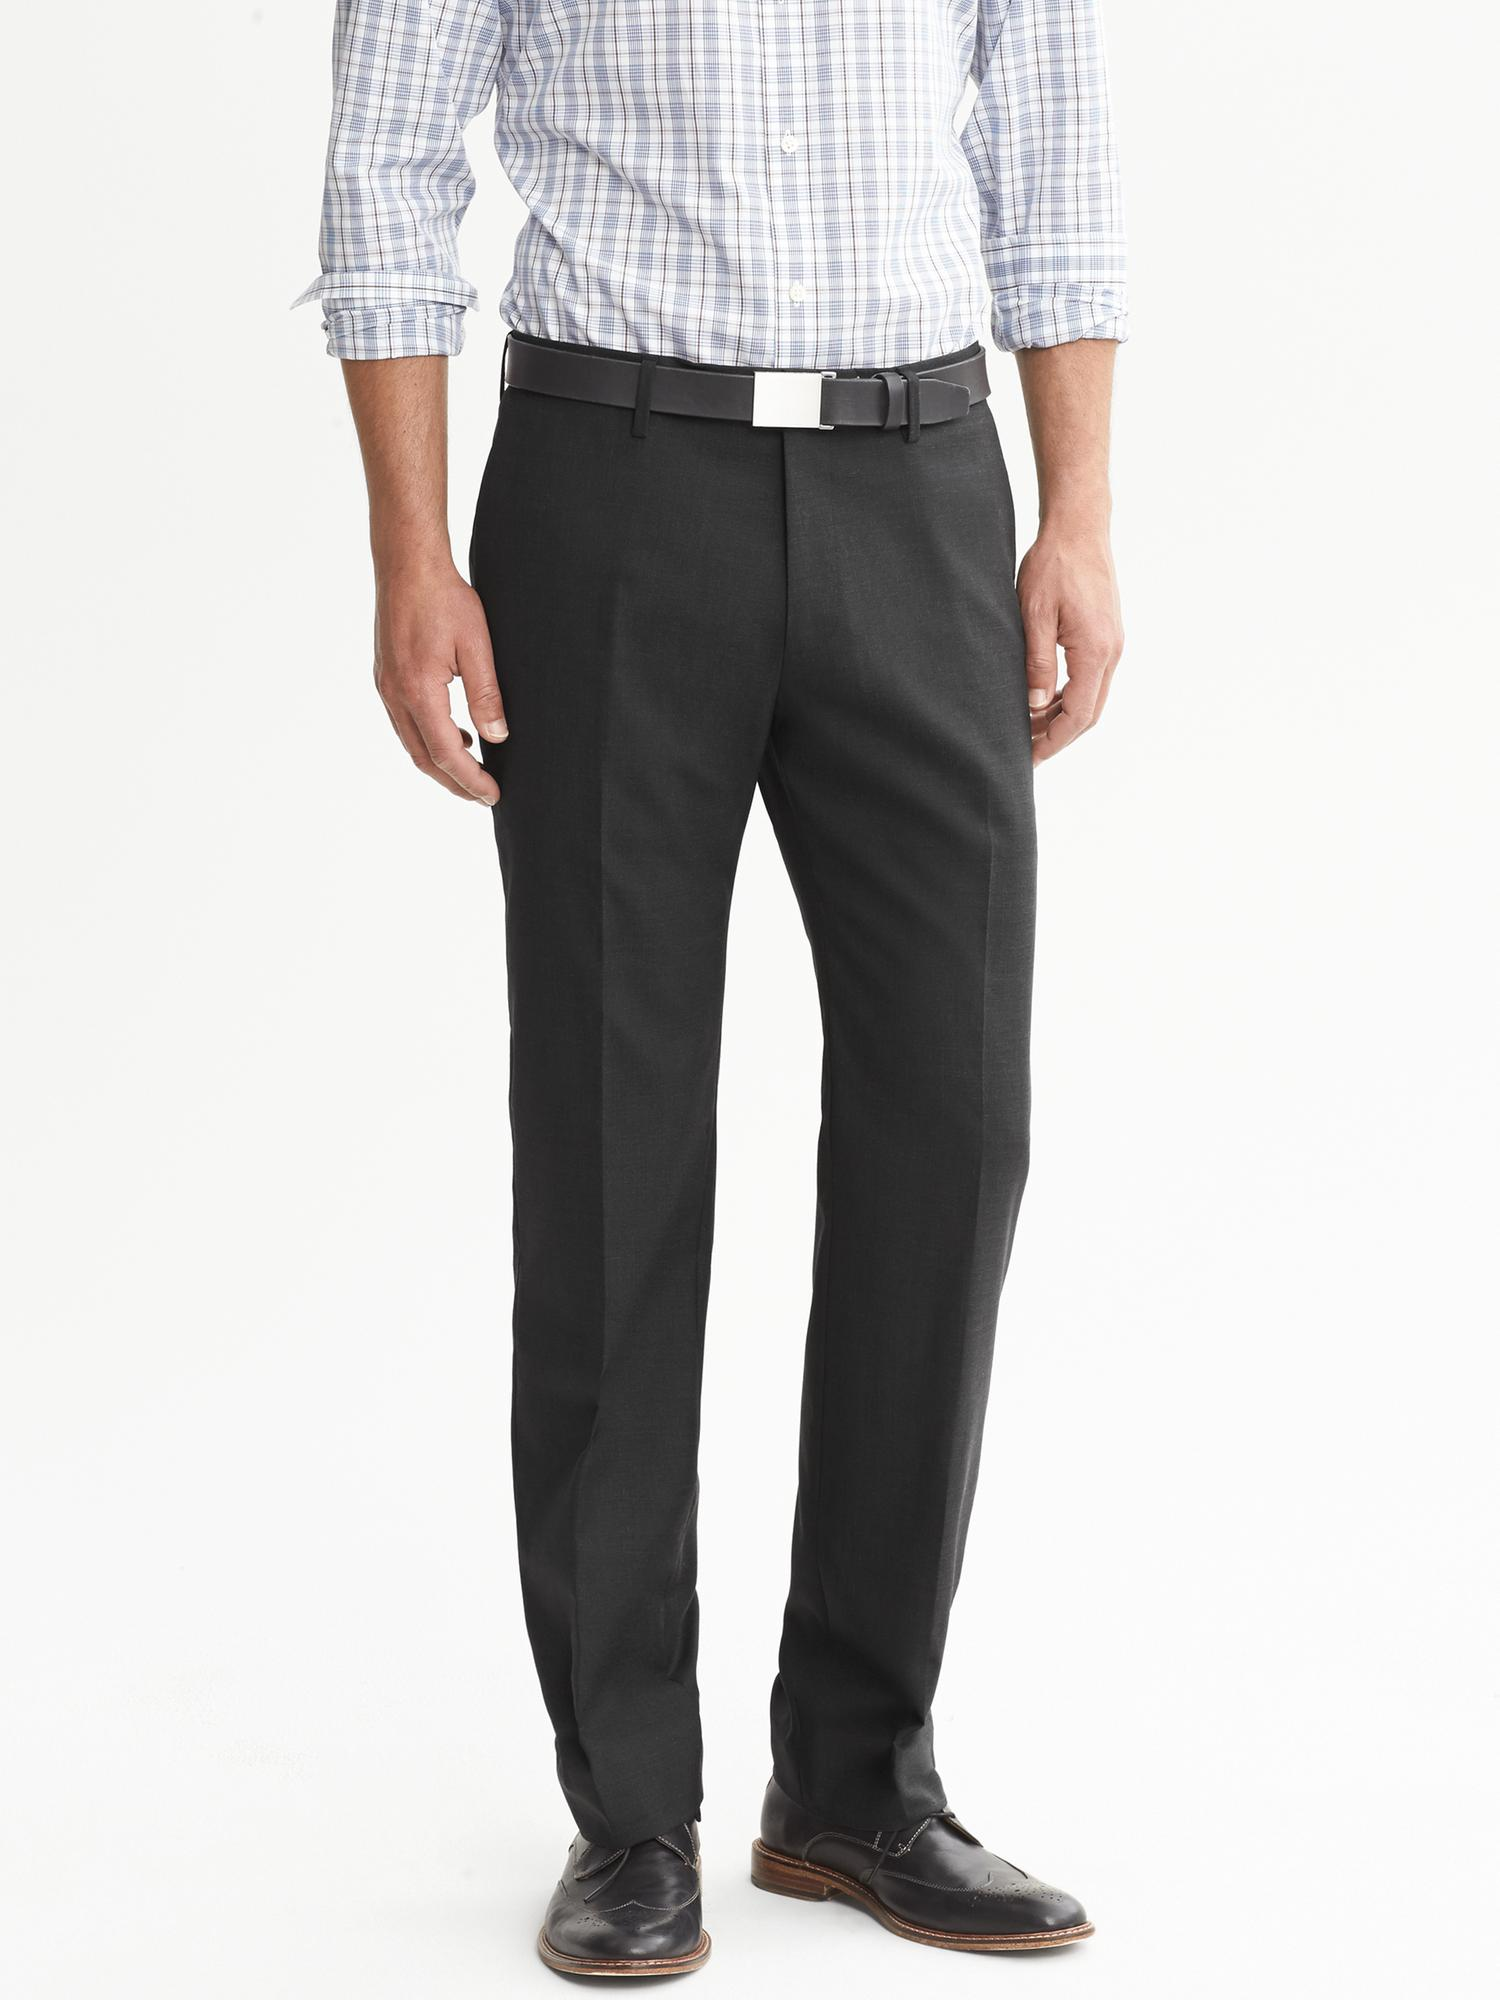 Find great deals on eBay for banana republic men's pants. Shop with confidence.